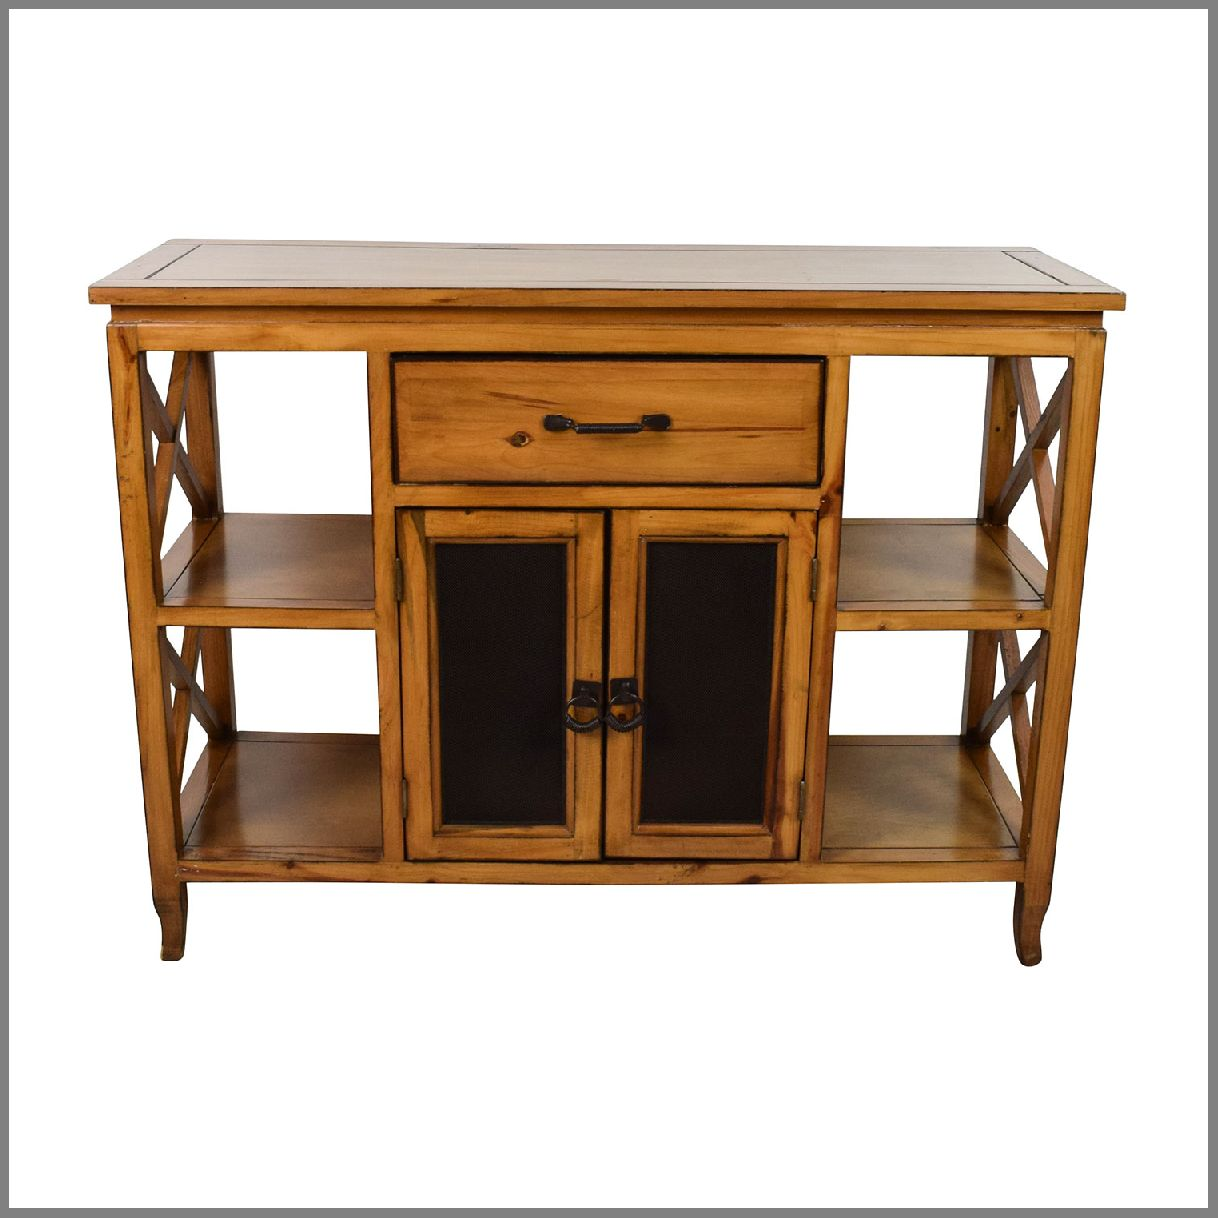 charming monarch specialties hall console accent table lowe off brown wooden entrance storage entryway with lamps usb west elm room planner small grey end nautical light fixtures